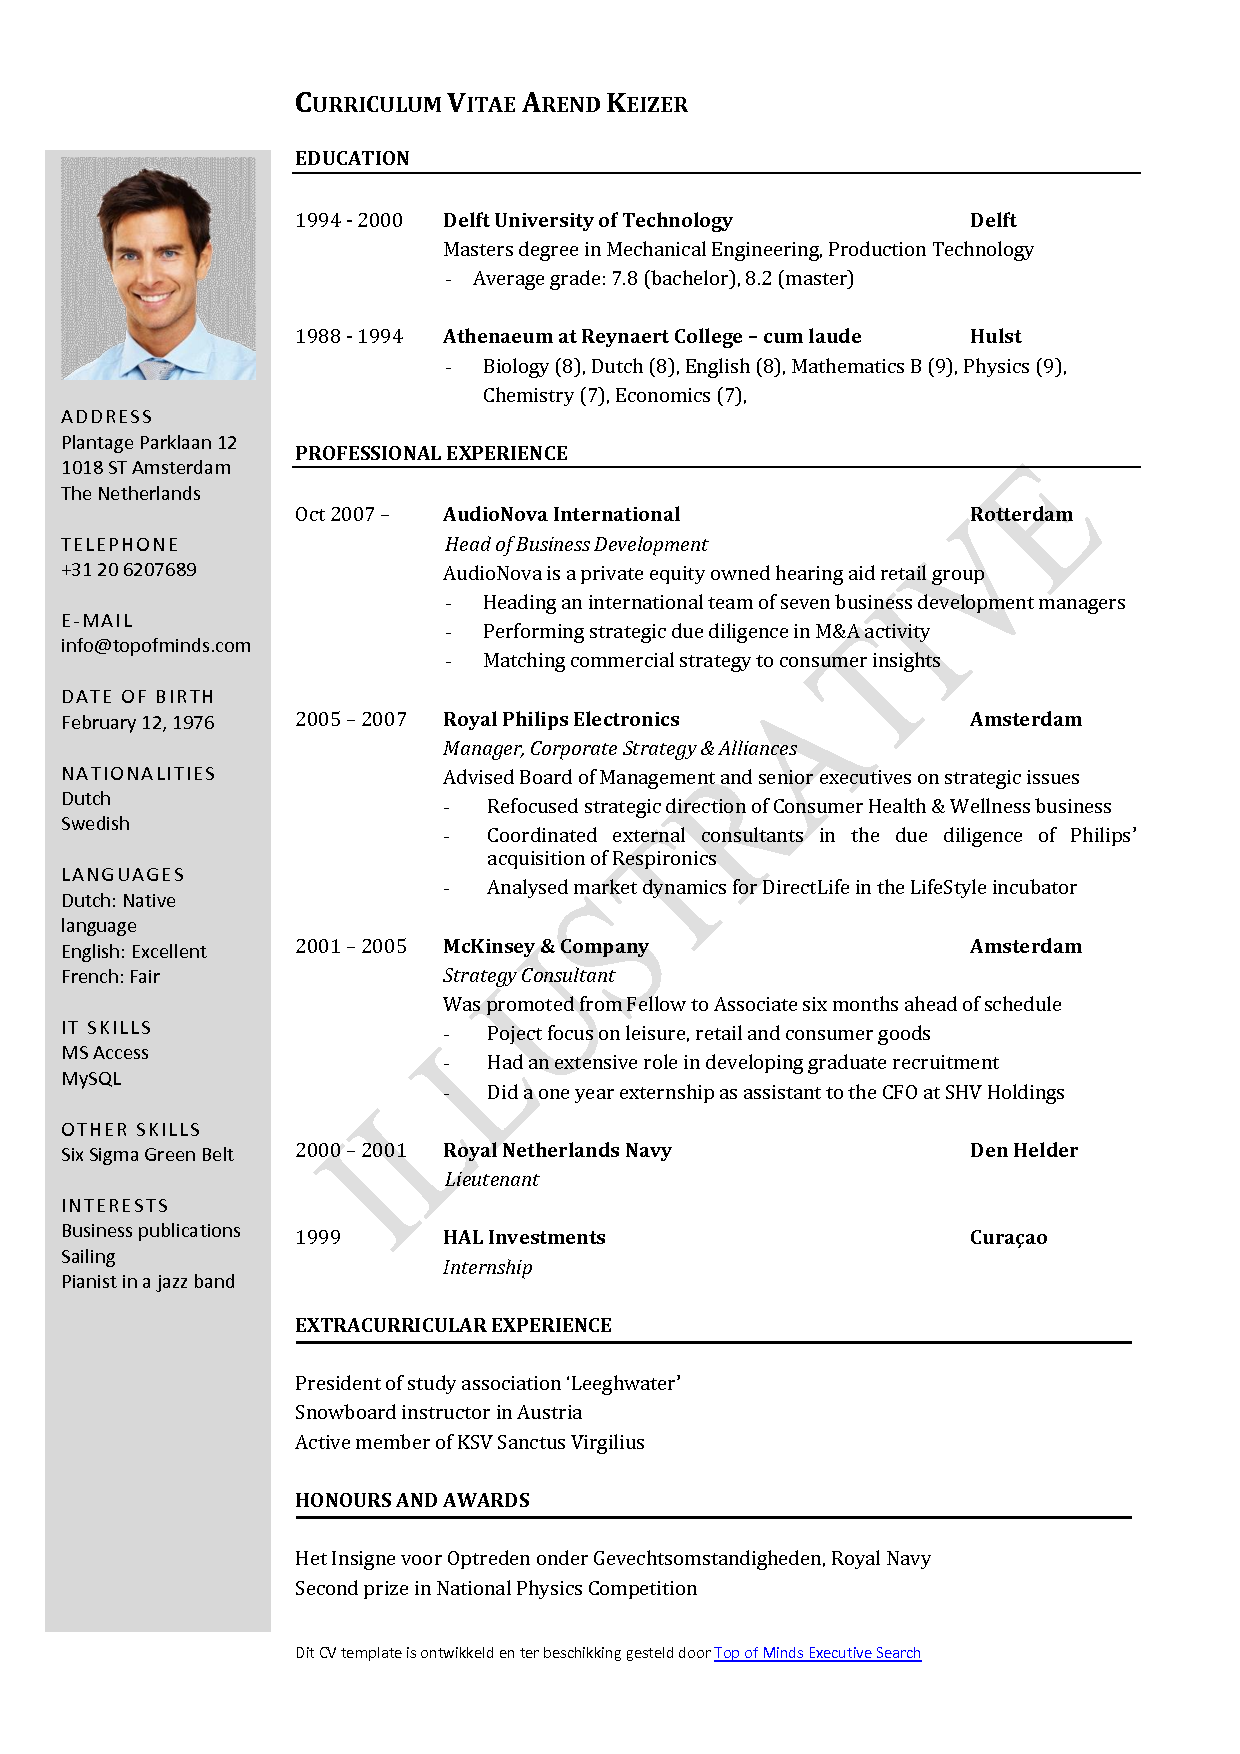 Curriculum Vitae Template Word | Free Curriculum Vitae Template Word Download Cv Template When